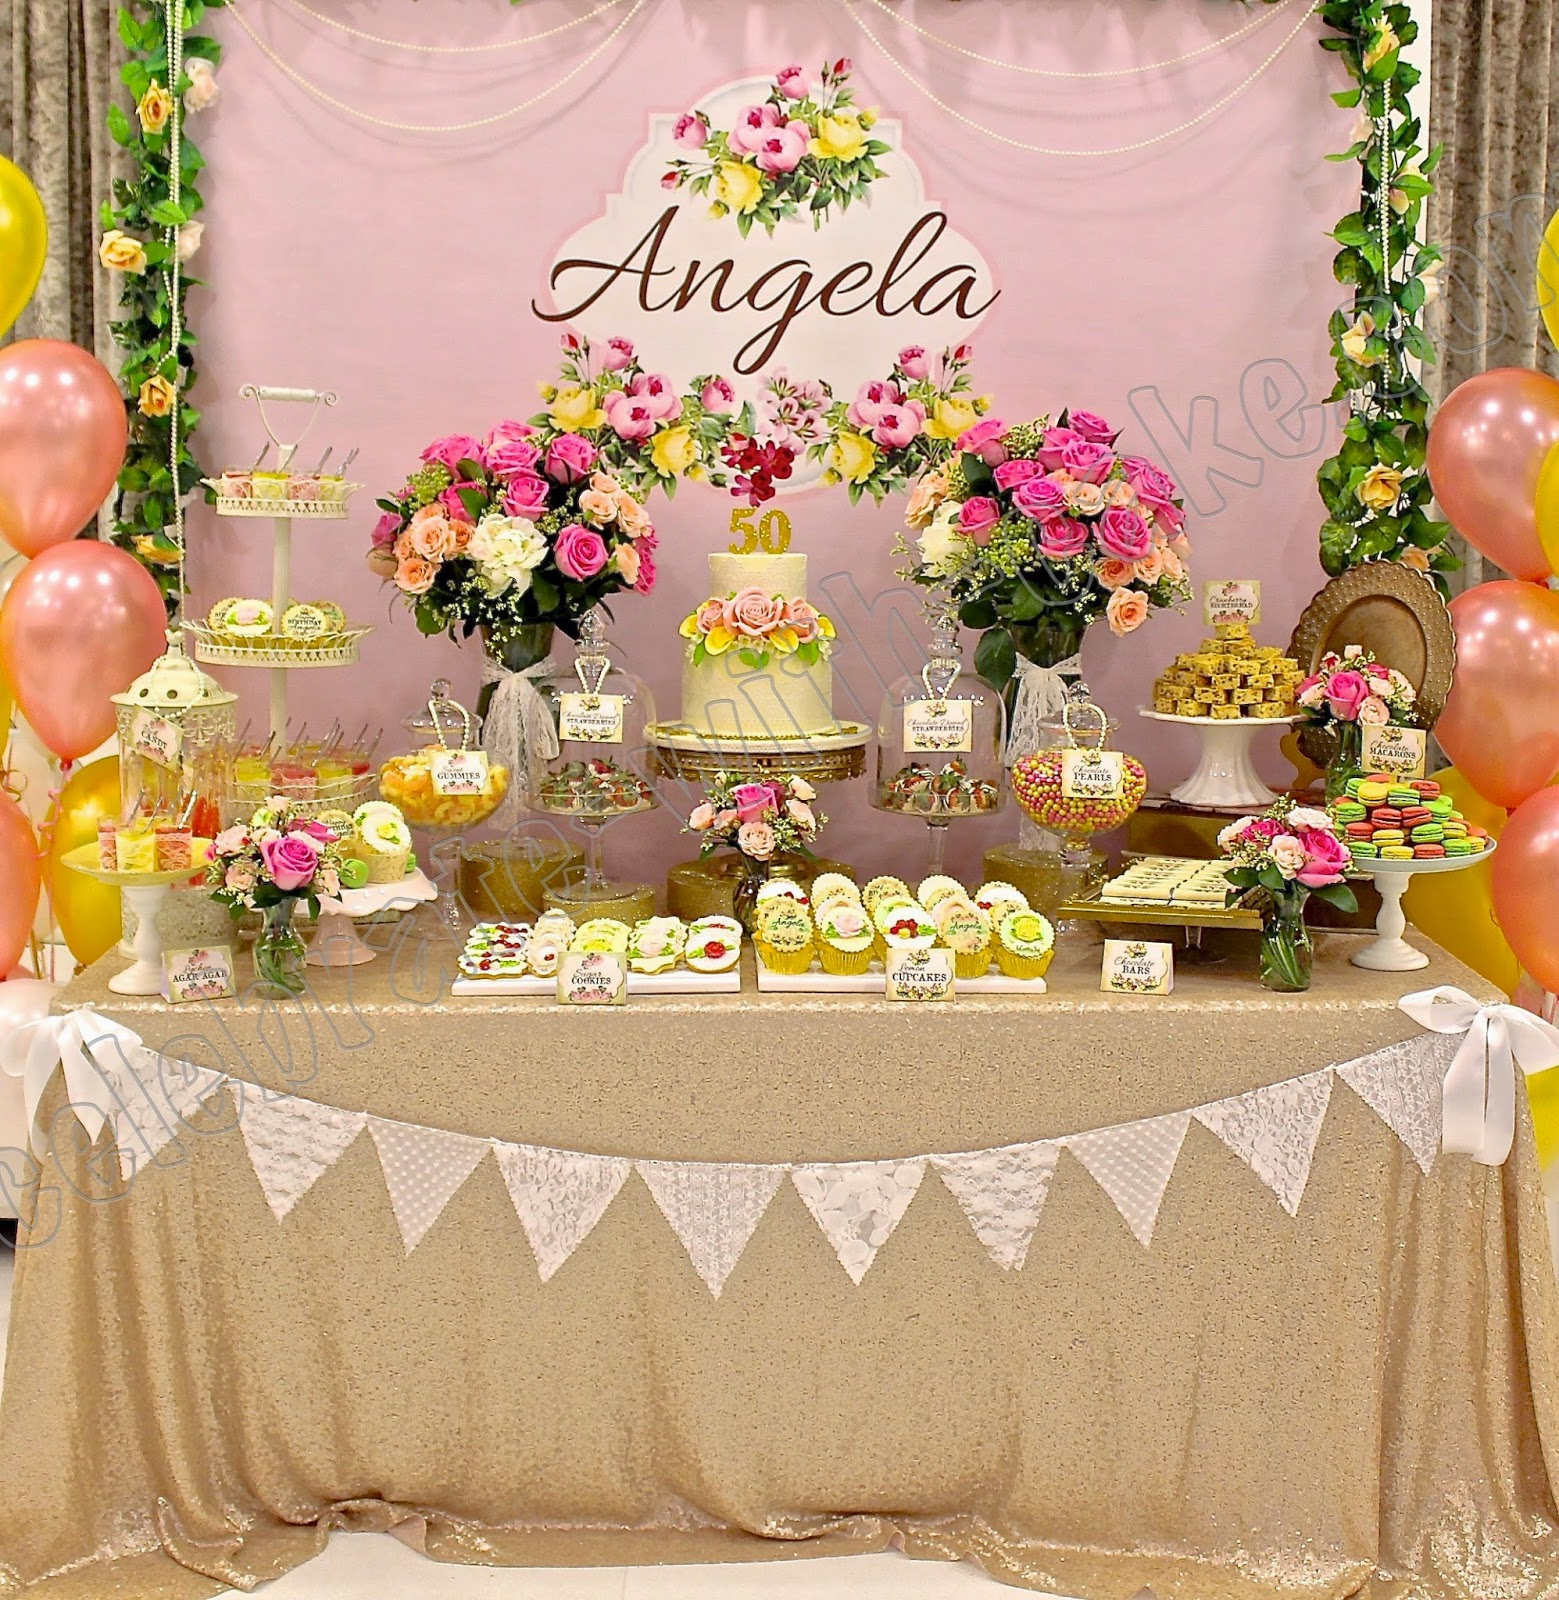 Vintage Floral Themed Dessert Table Click Post To View